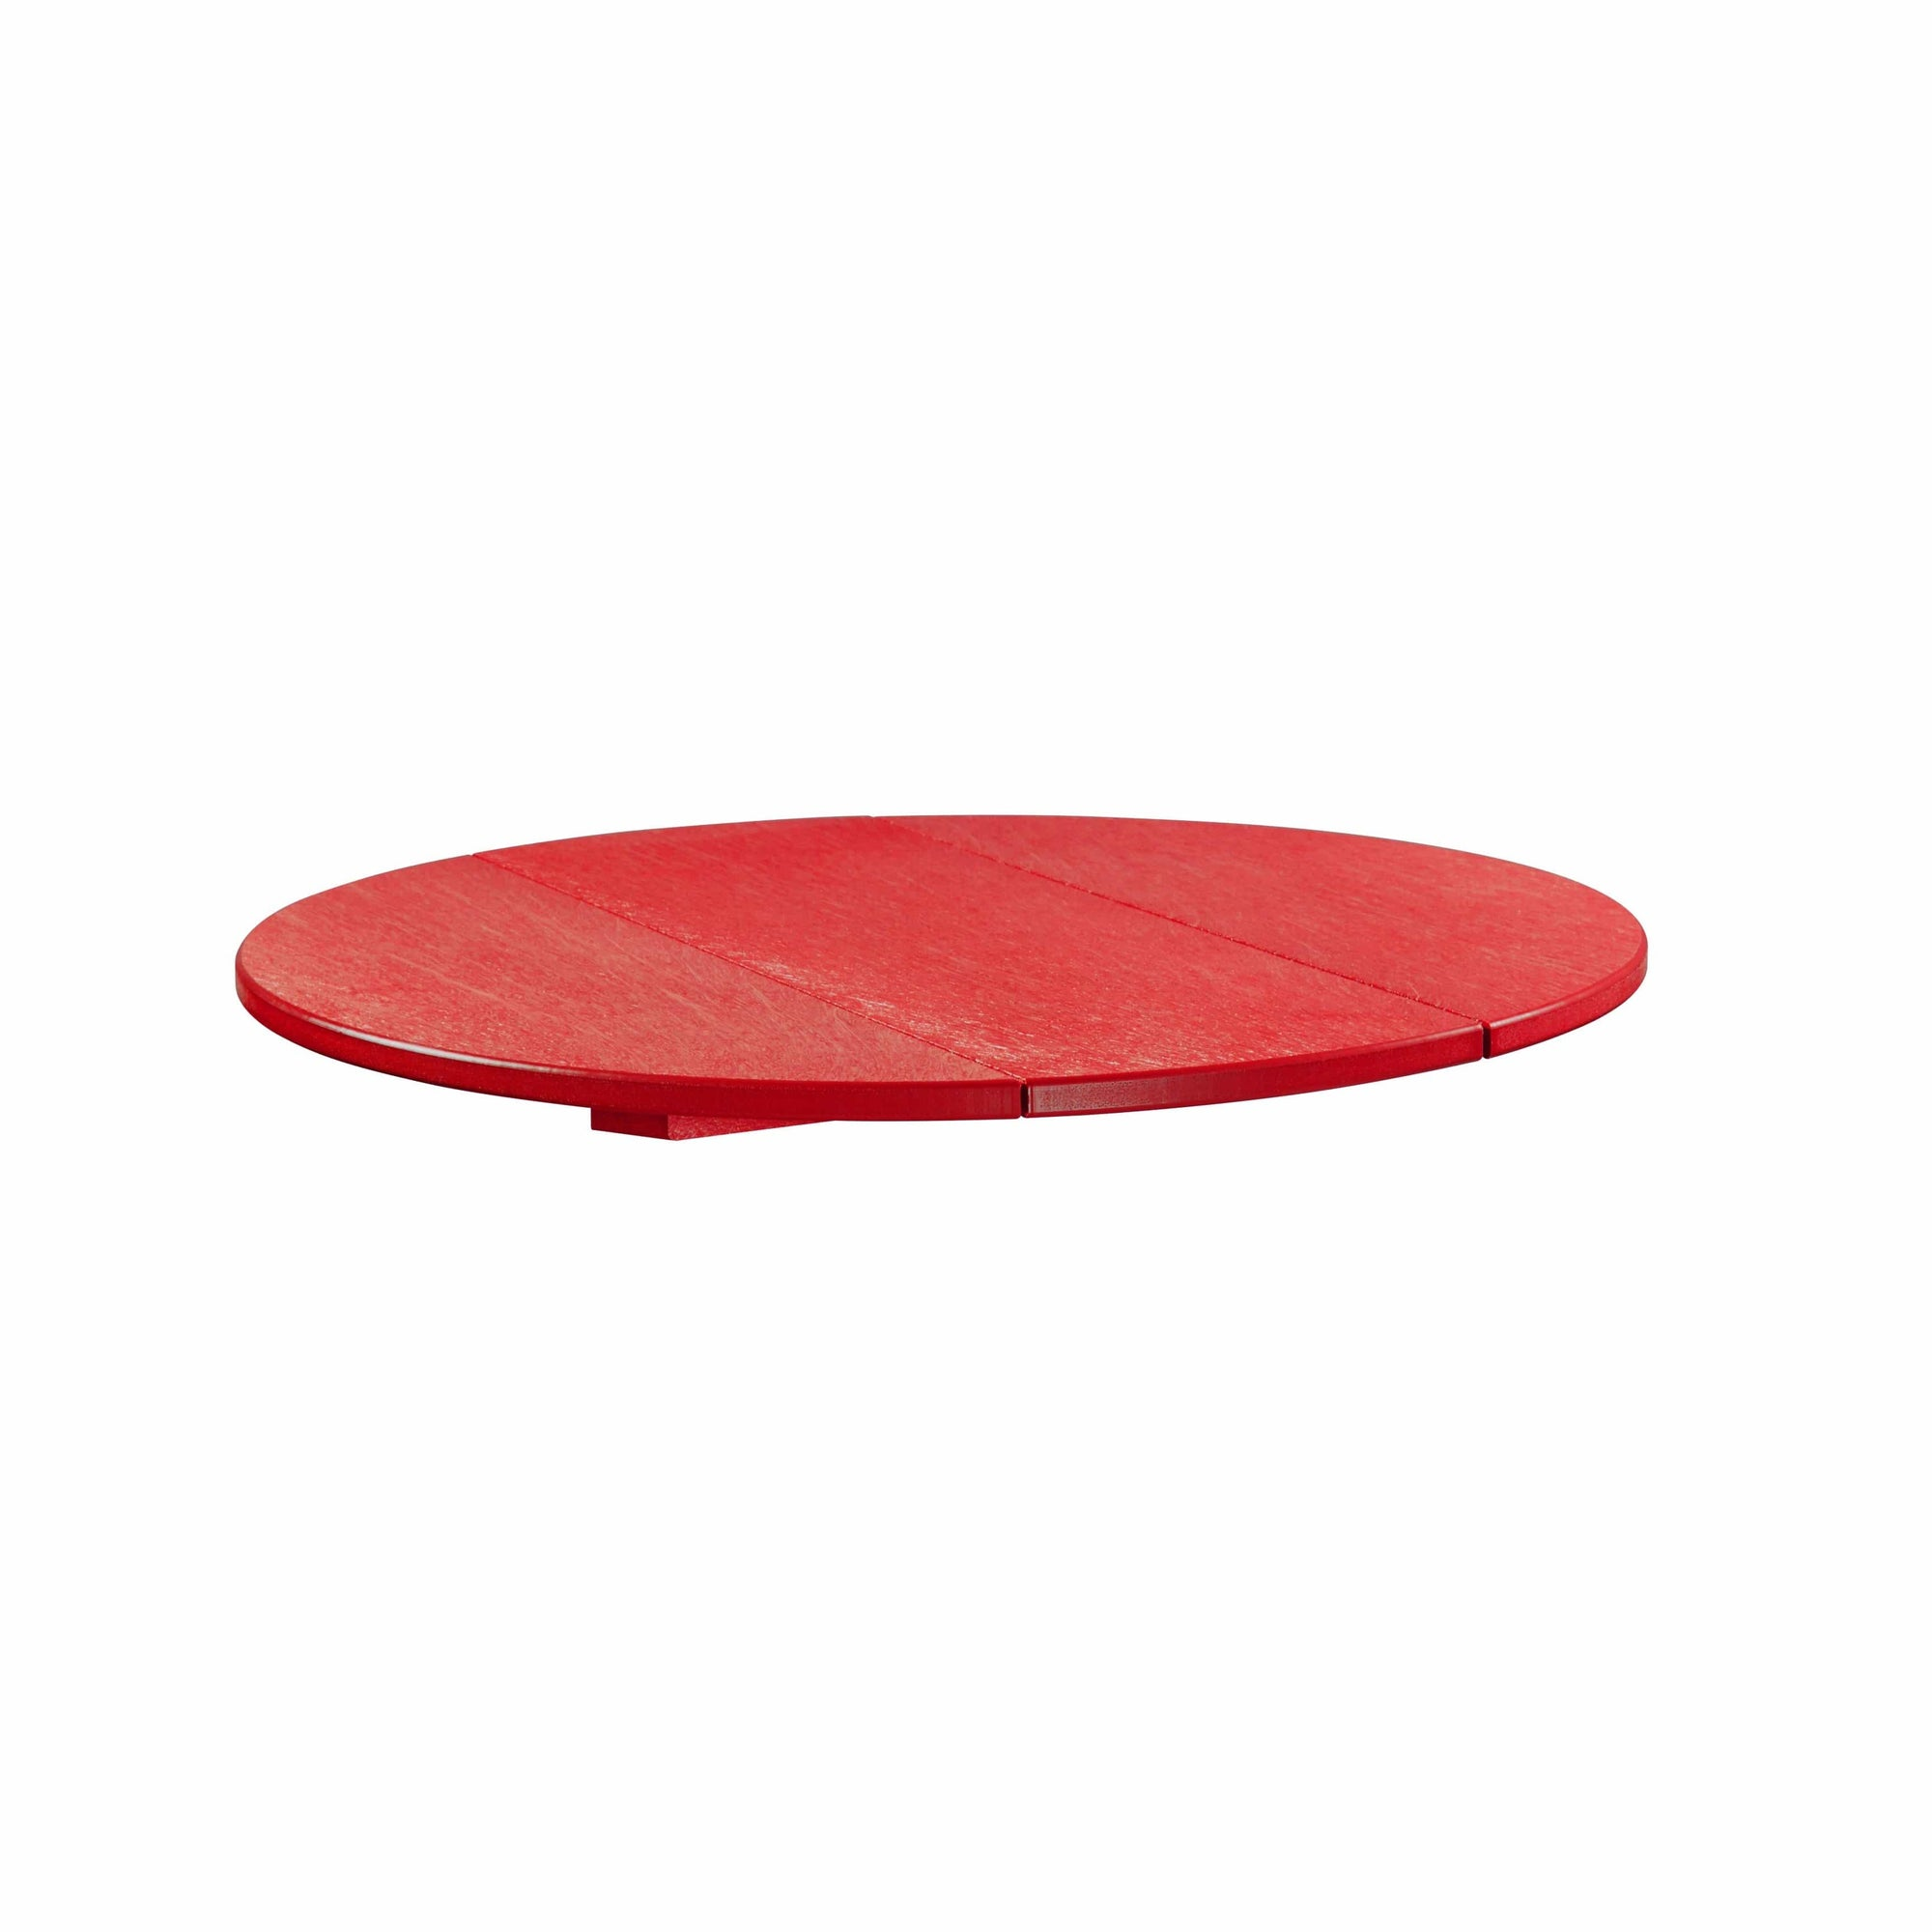 "C.R. Plastic Products Dining Table Red-01 TT03 32"" Round Table Top"